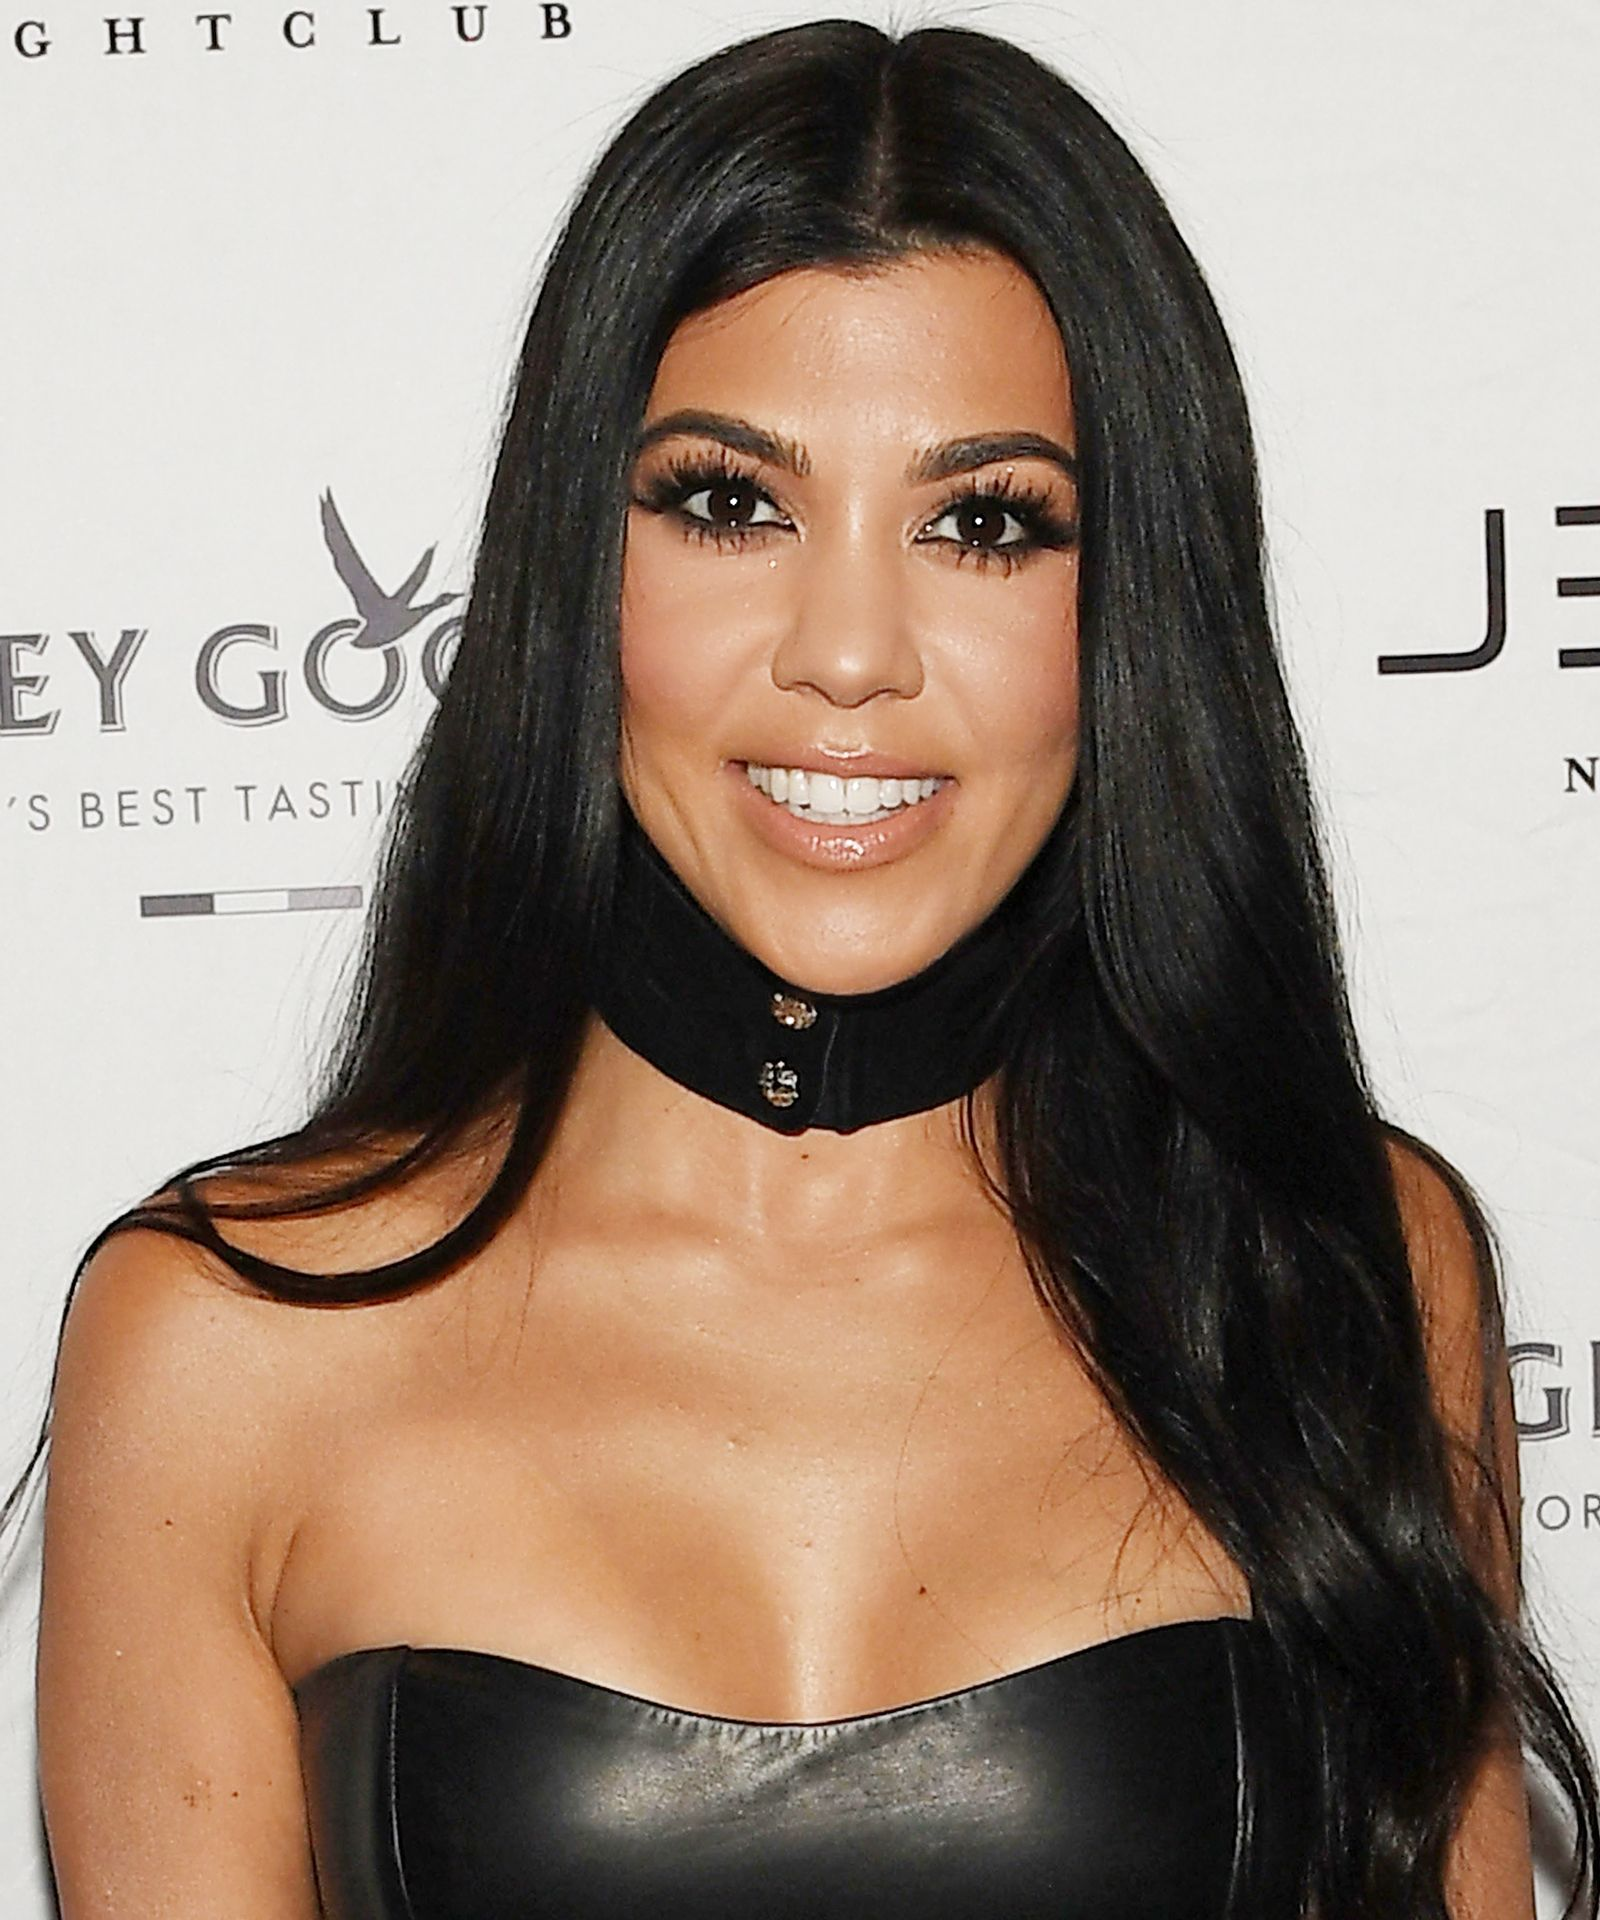 LingerieClad Kourtney Kardashian Is Glowing in Her Latest Instagram